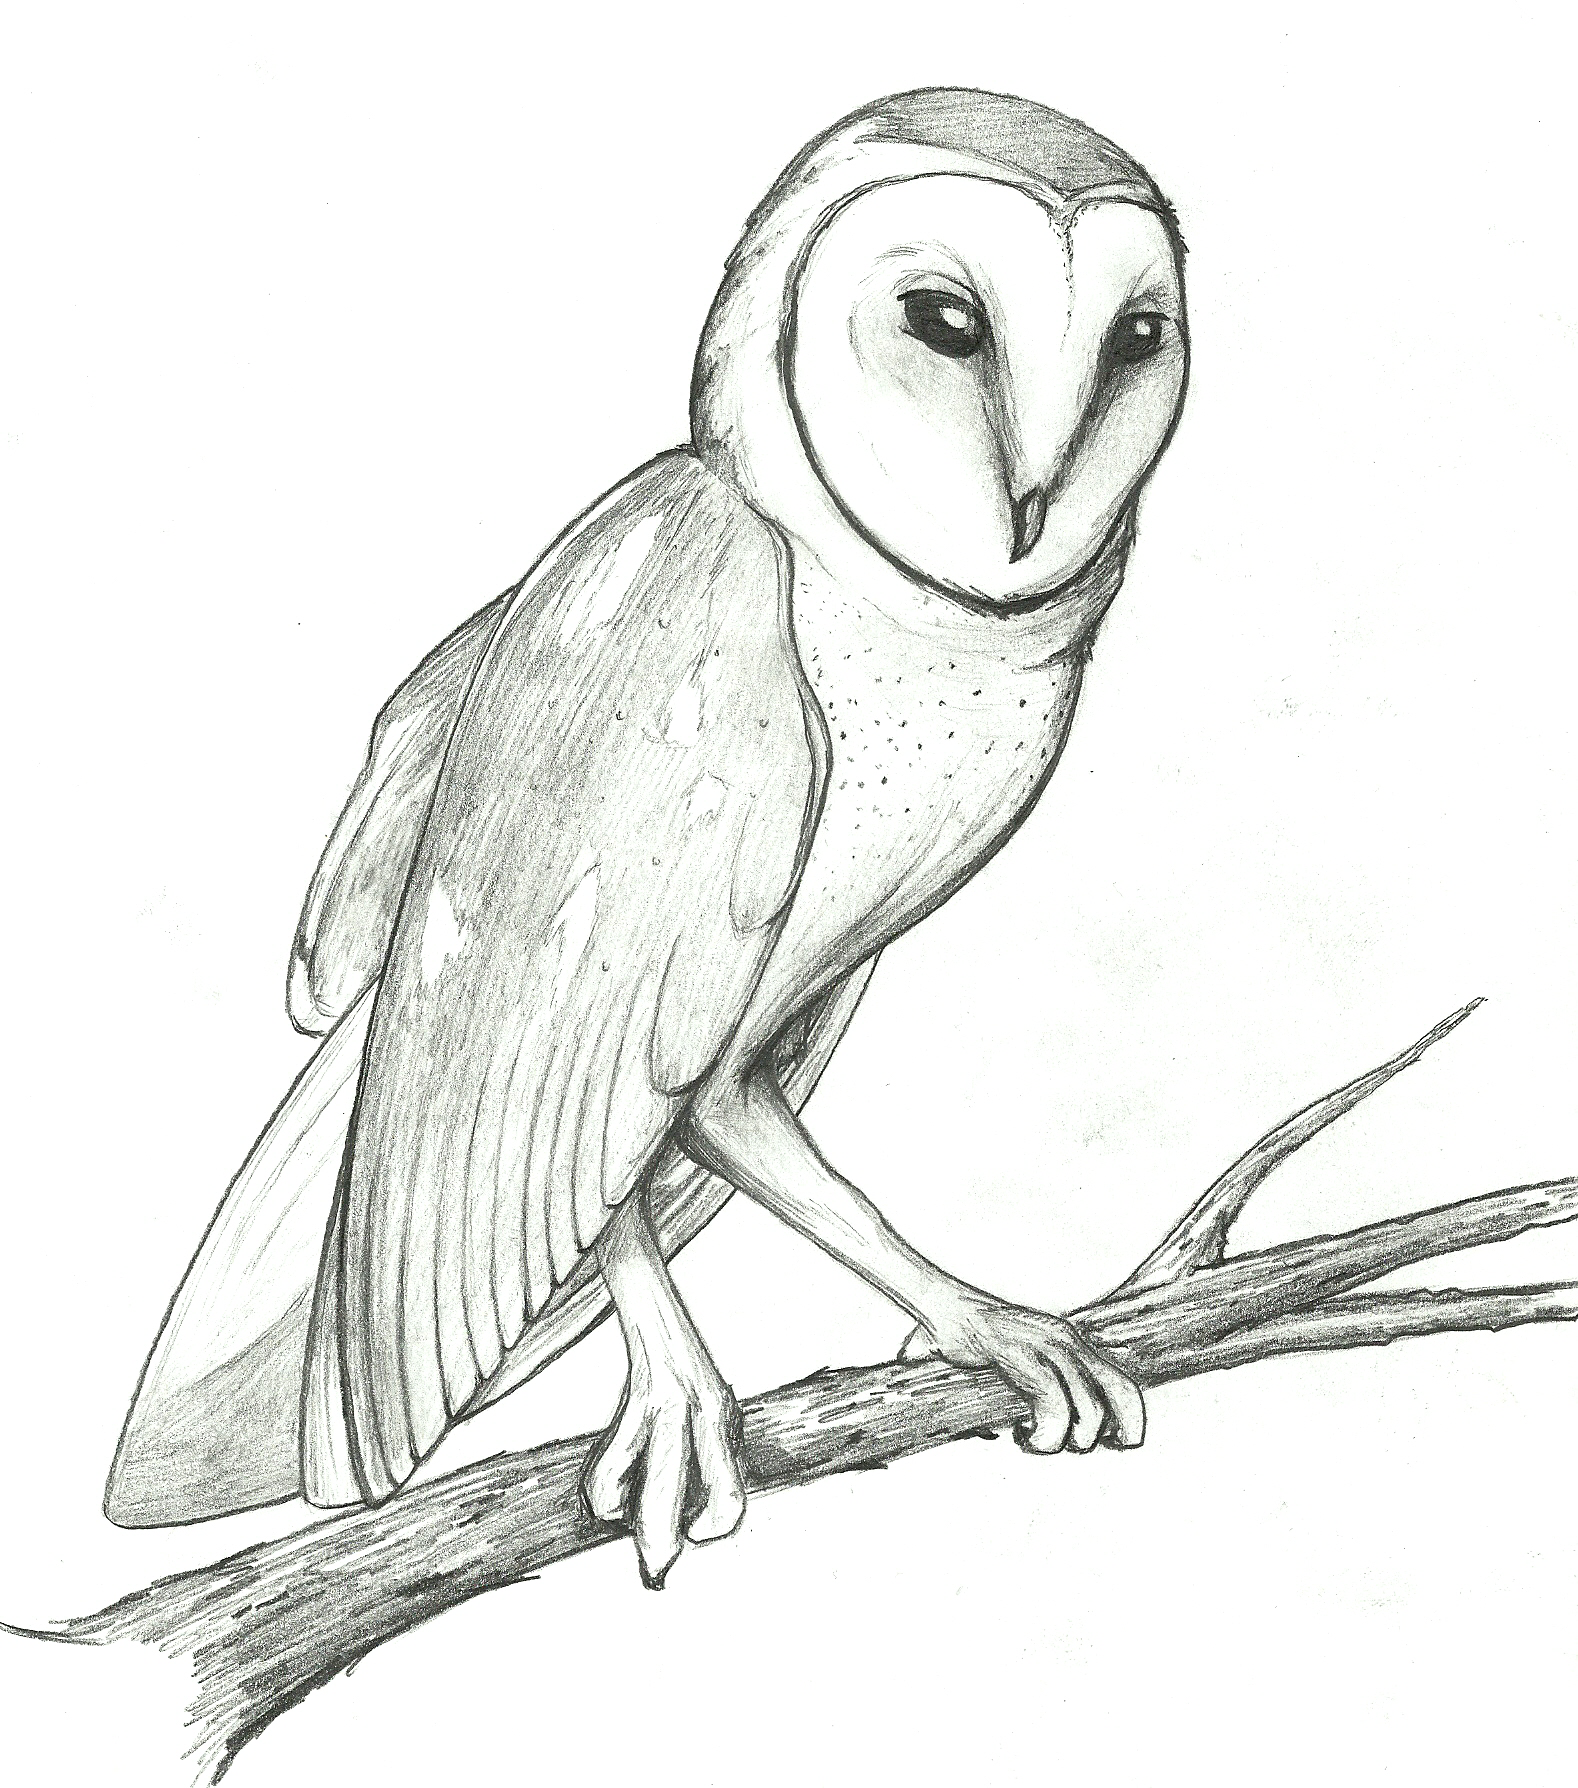 Barn Owl by boomythemc on DeviantArt